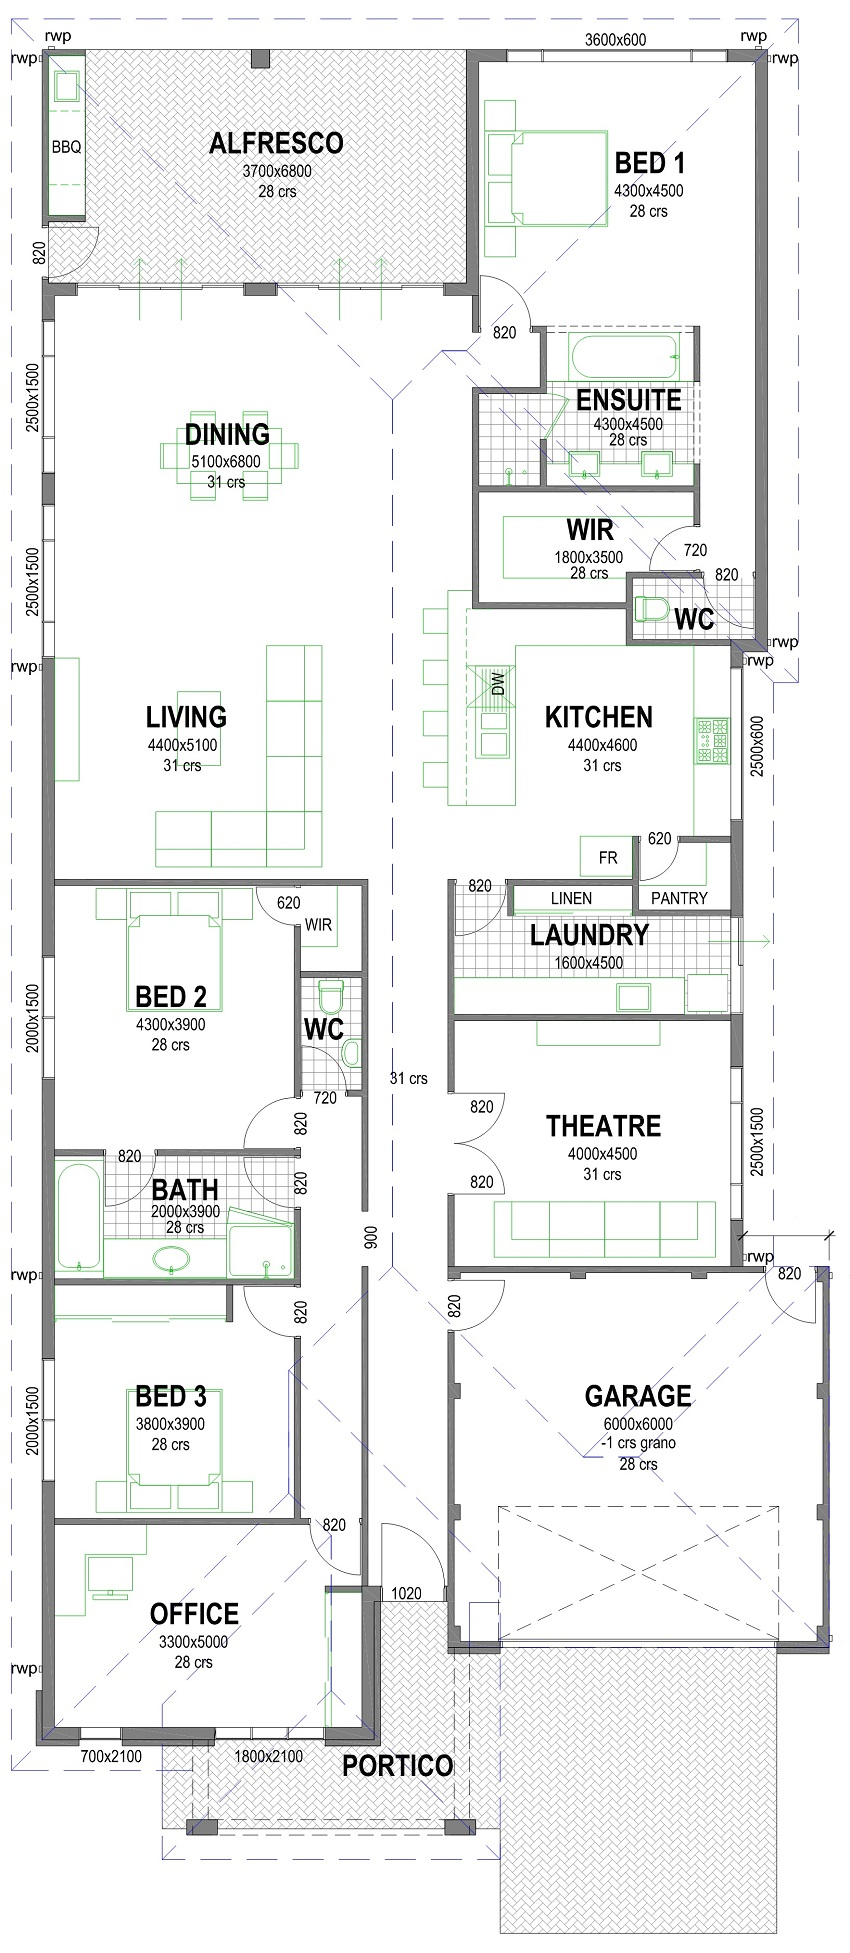 Mcove 850mm floorplan